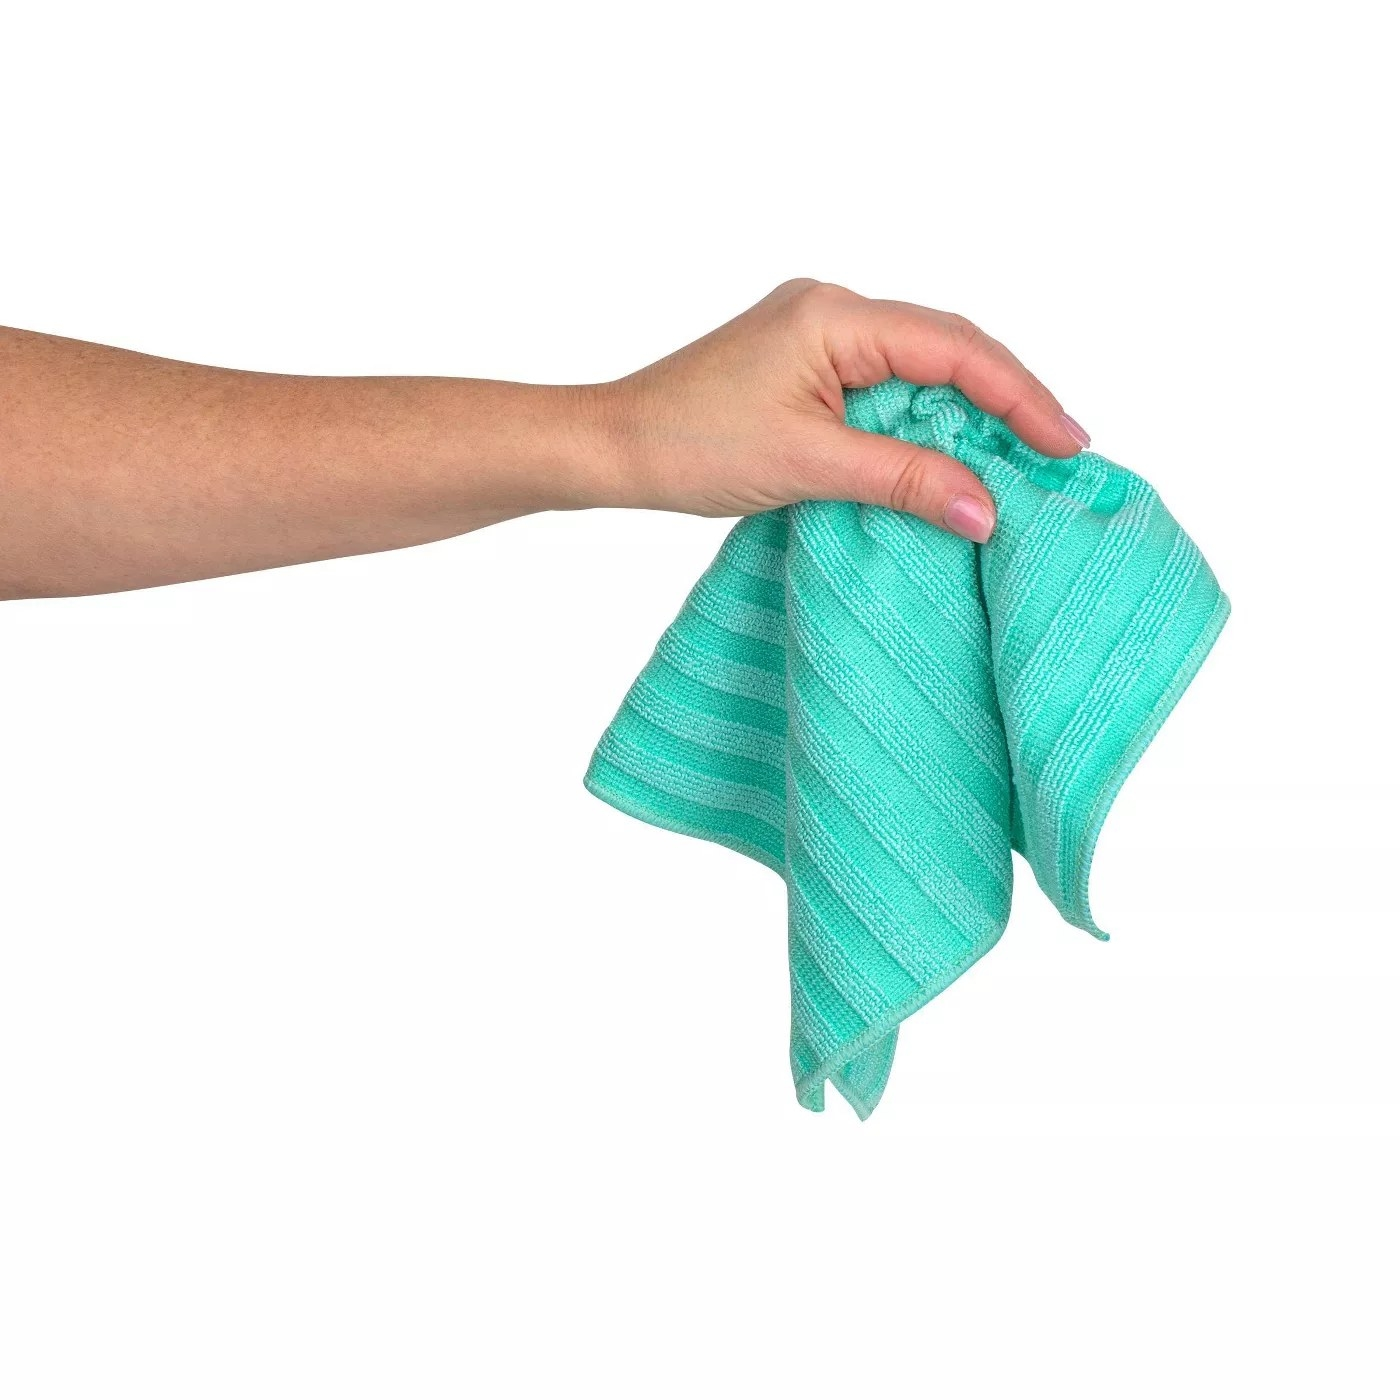 A turquoise microfiber cloth with a striped texture